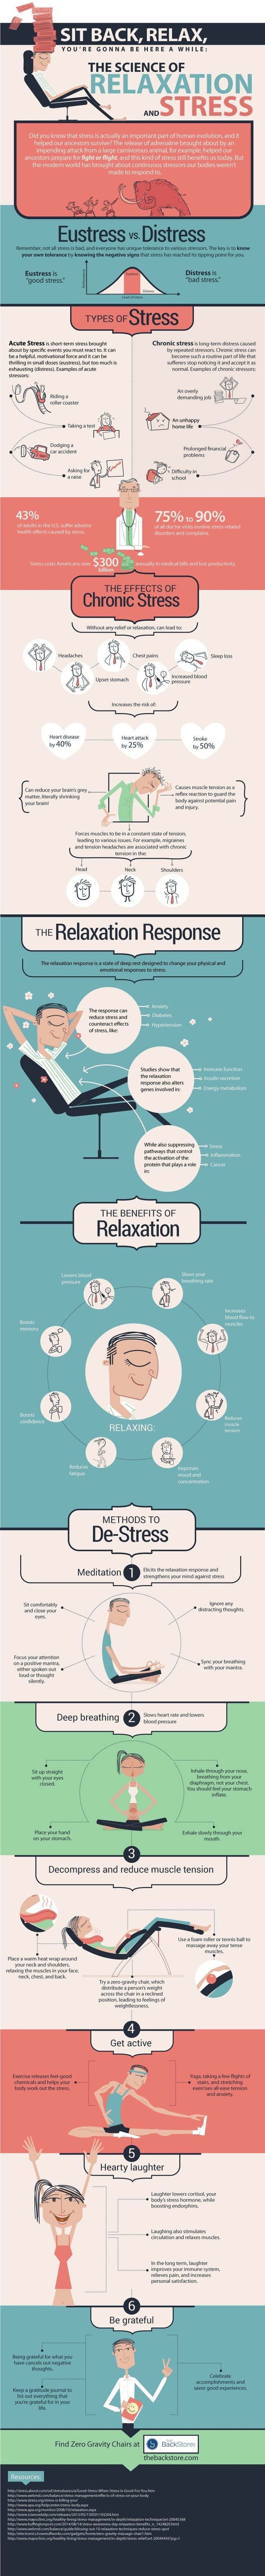 Did you know stress can be vital to your survival? Really interesting statistics about stress...